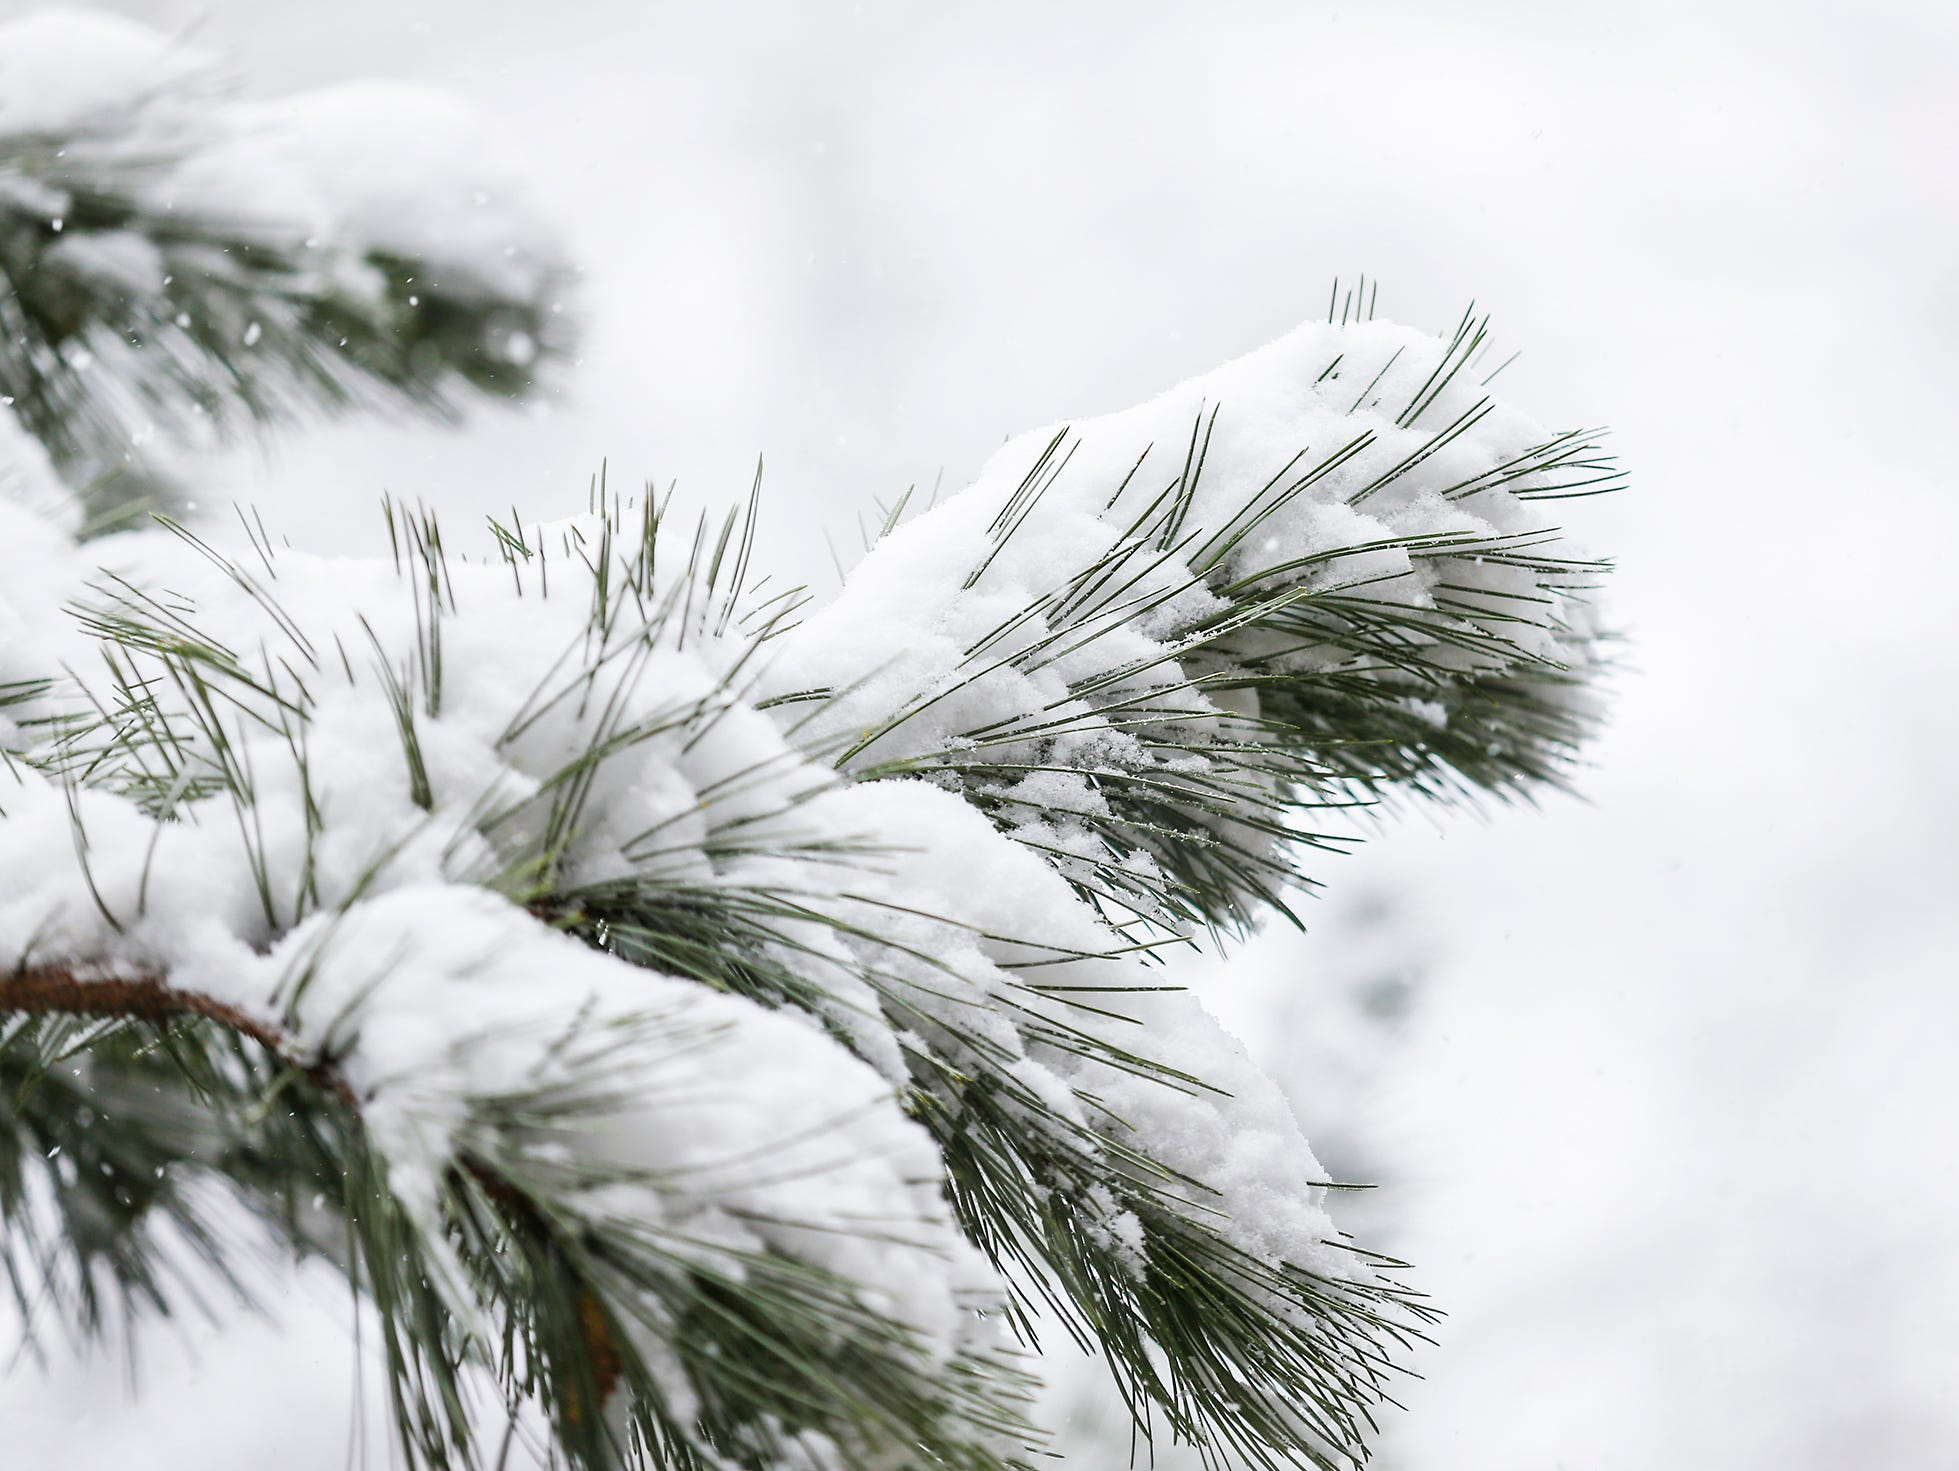 Snow covers a pine branch during a winter storm Tuesday, Feb. 12, 2019, in Fond du Lac, Wis. A winter storm warning was issued for the area.